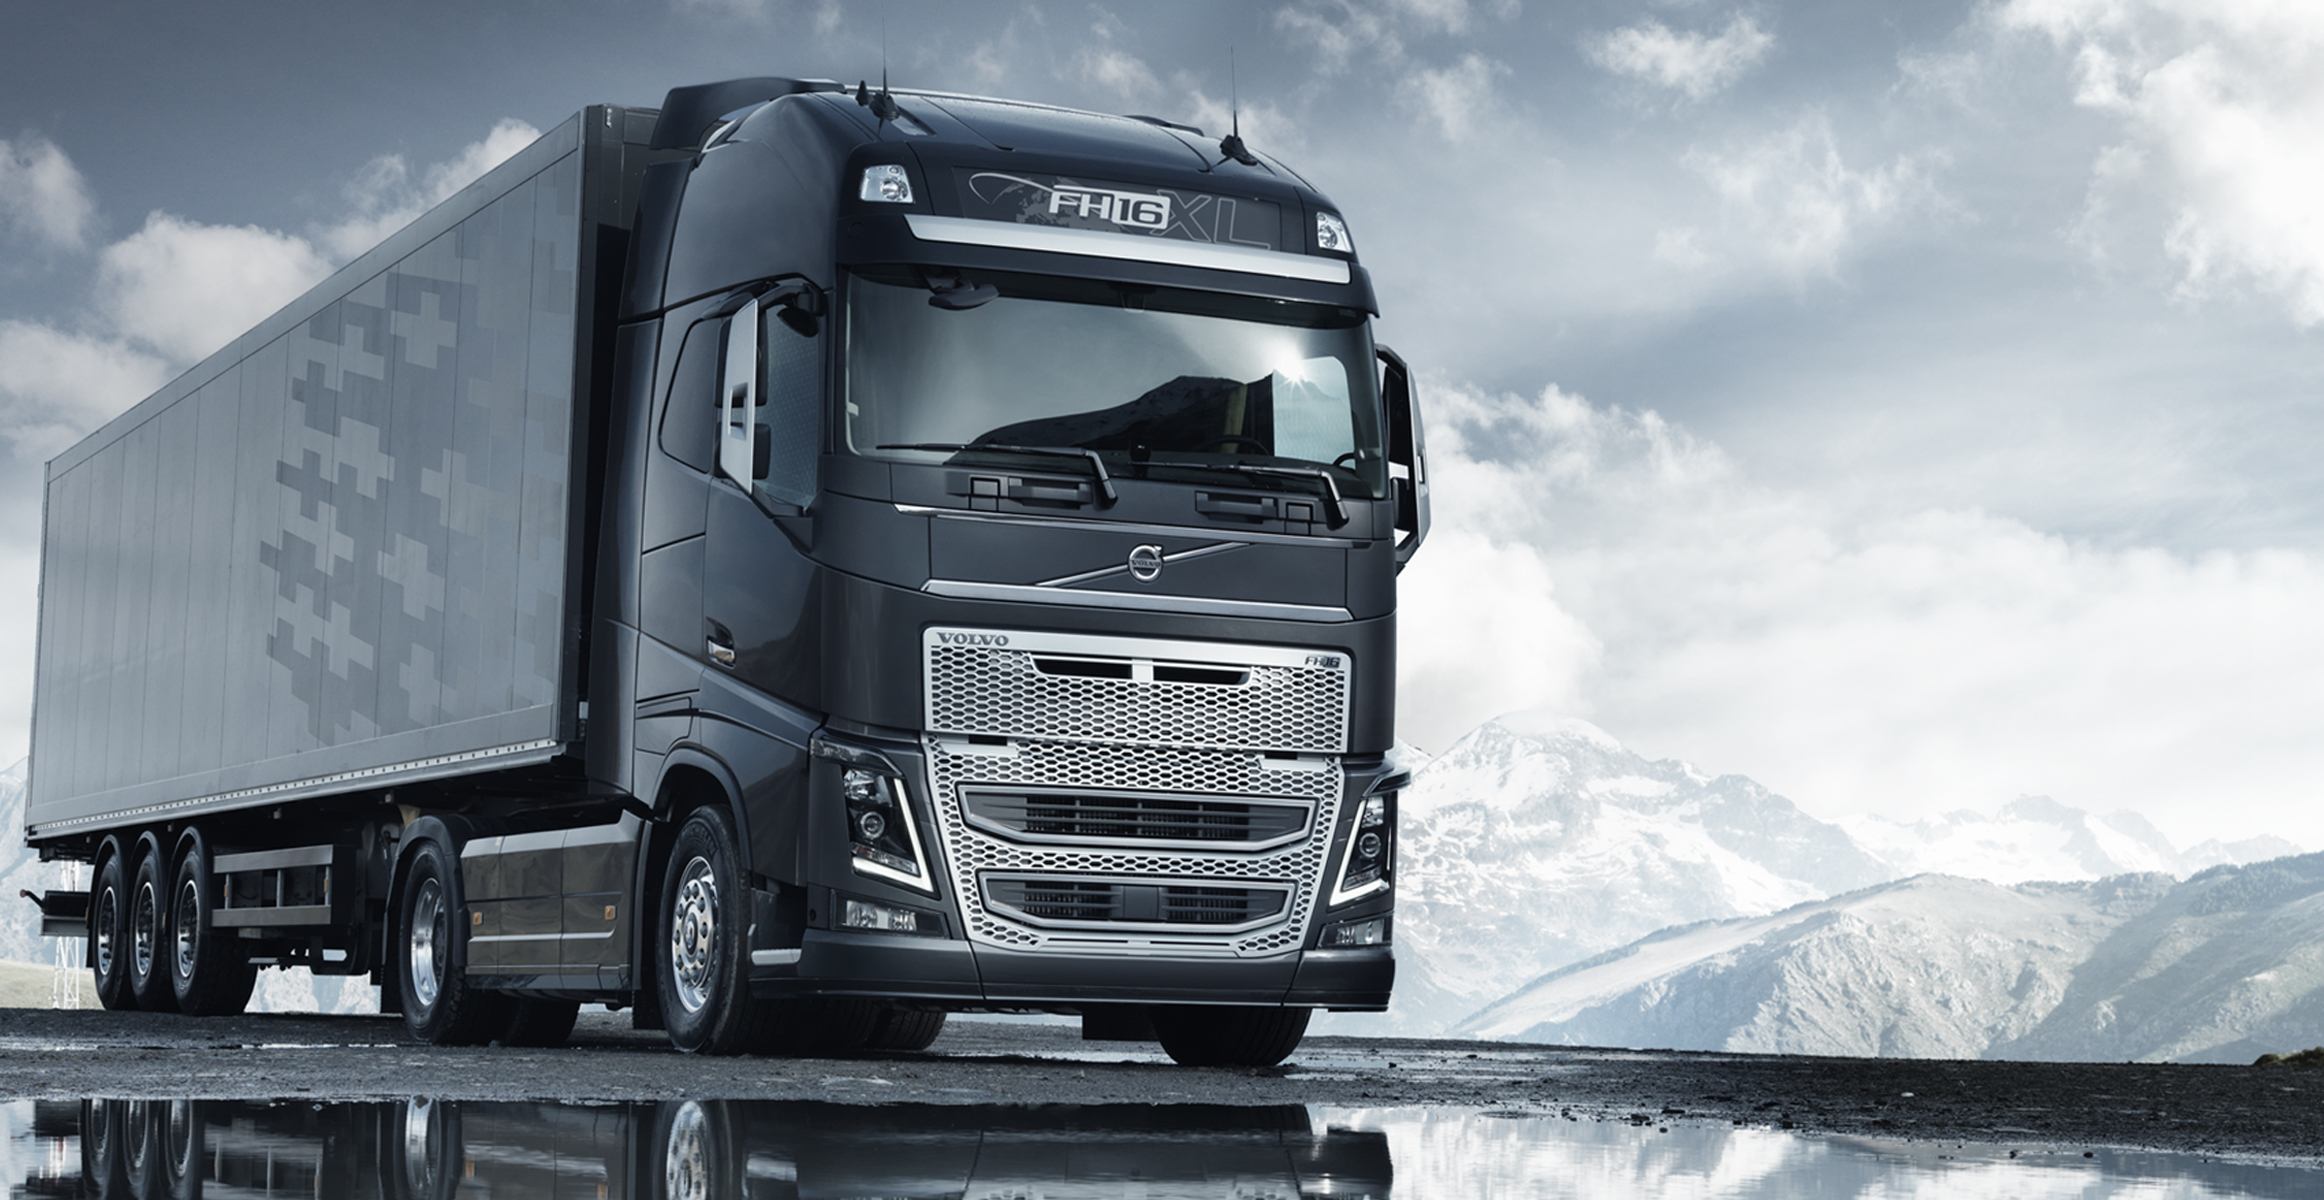 Volvo Fh16 Our Most Powerful Truck Volvo Trucks